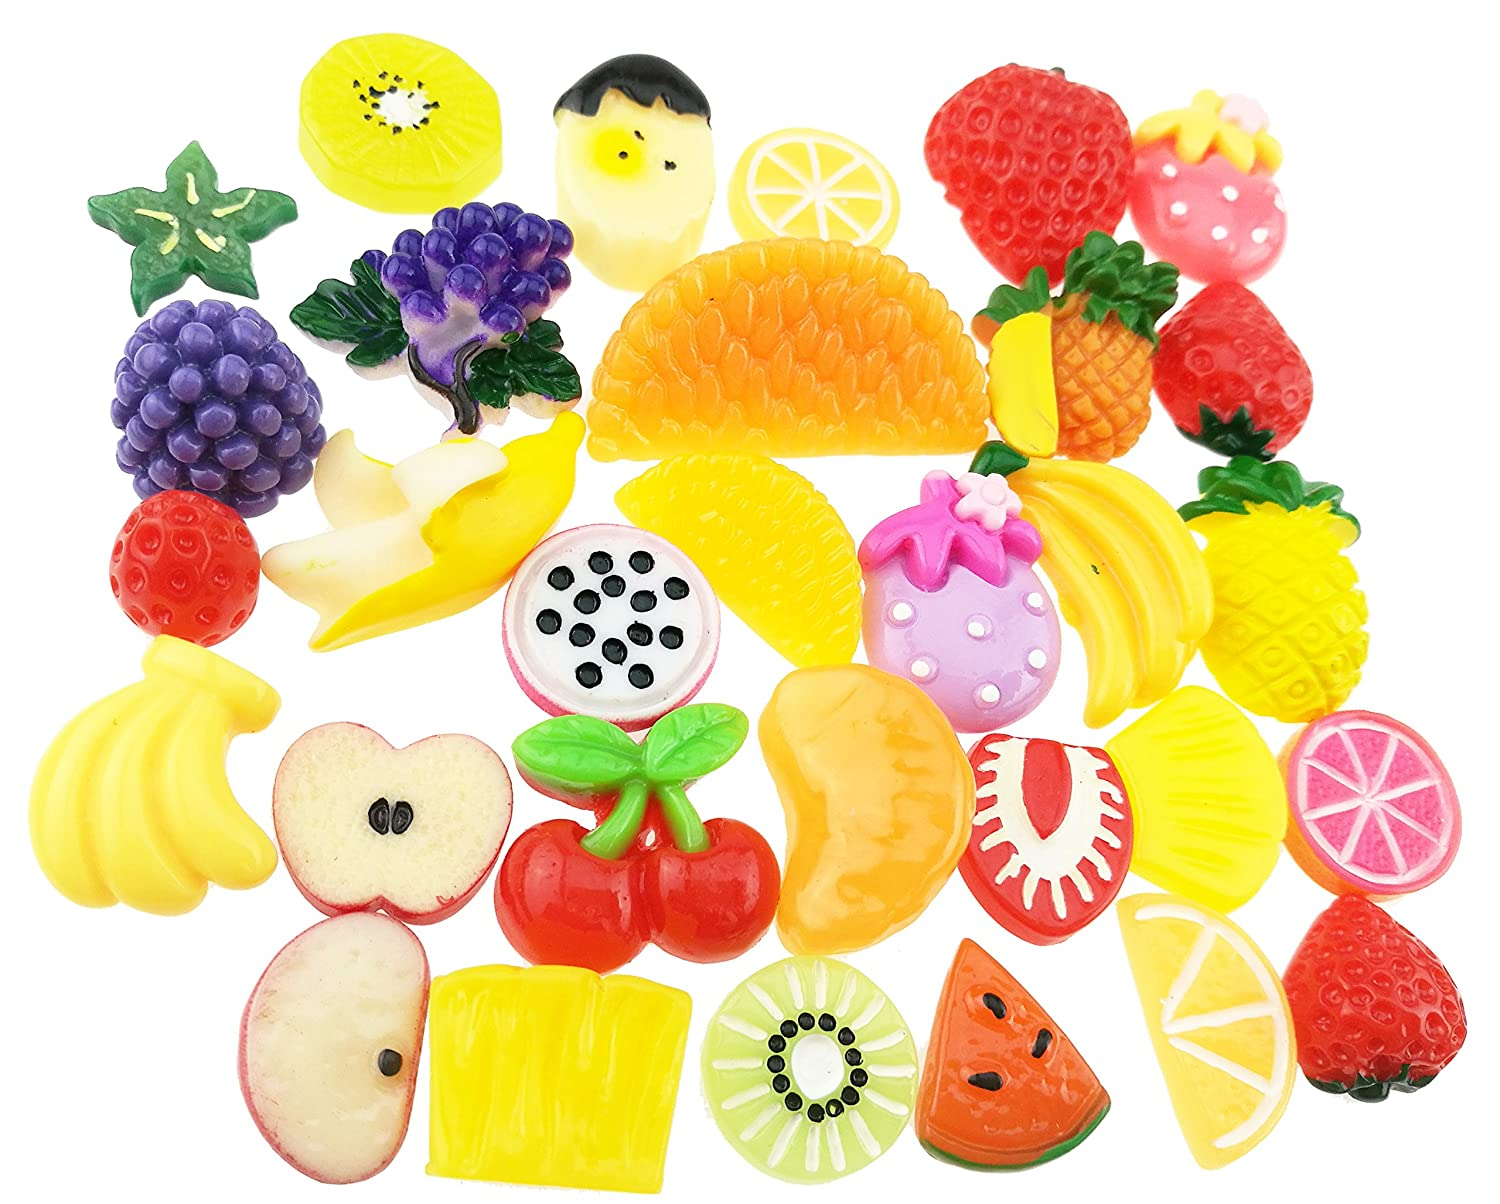 30 Pieces Cute Fashion Mixed Resin Flatback Diy Handwork Imitation Fruit Cellphone Decoration Beads Button Embellishments